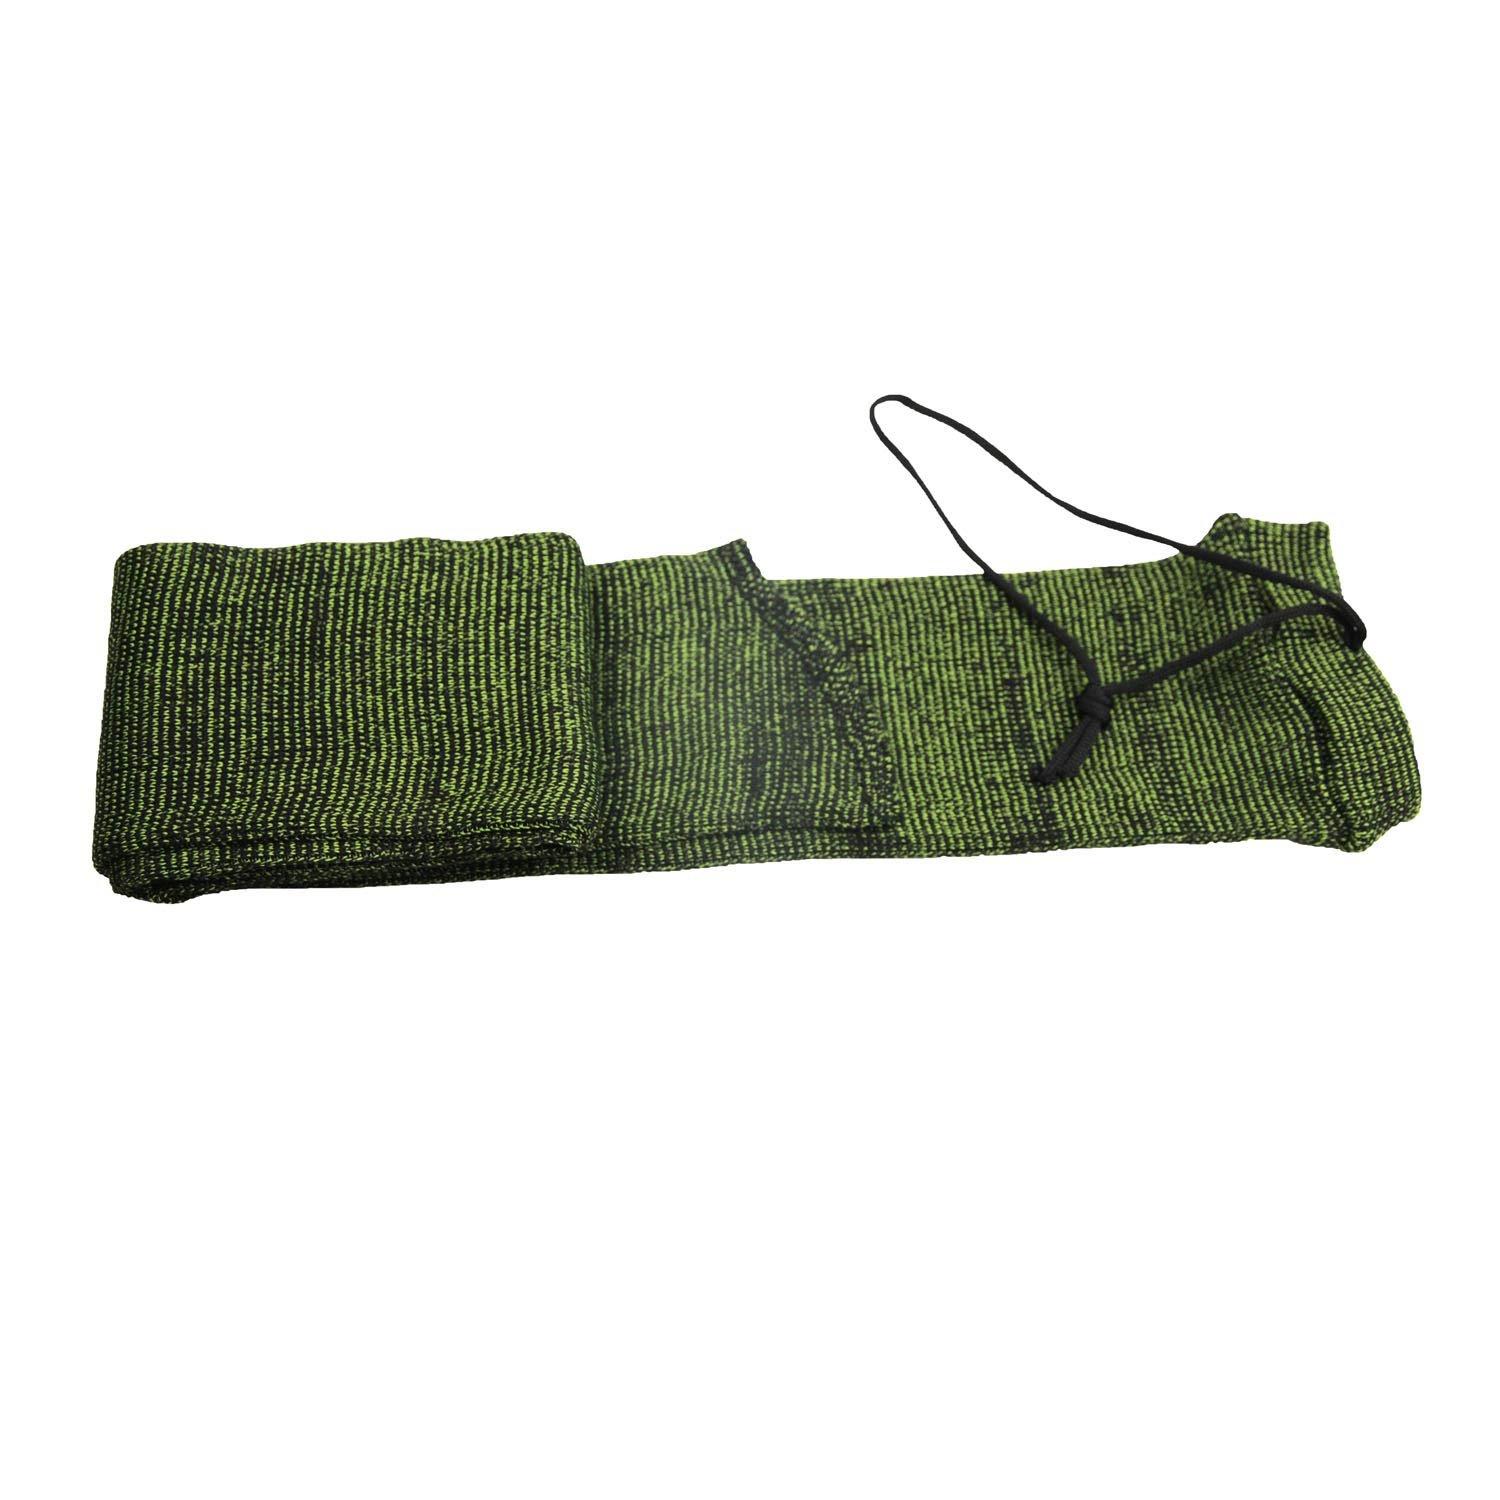 GUGULUZA Silicone Treated Knit Gun Socks 52'' for Rifles (F-Green - 1 Pack) by GUGULUZA